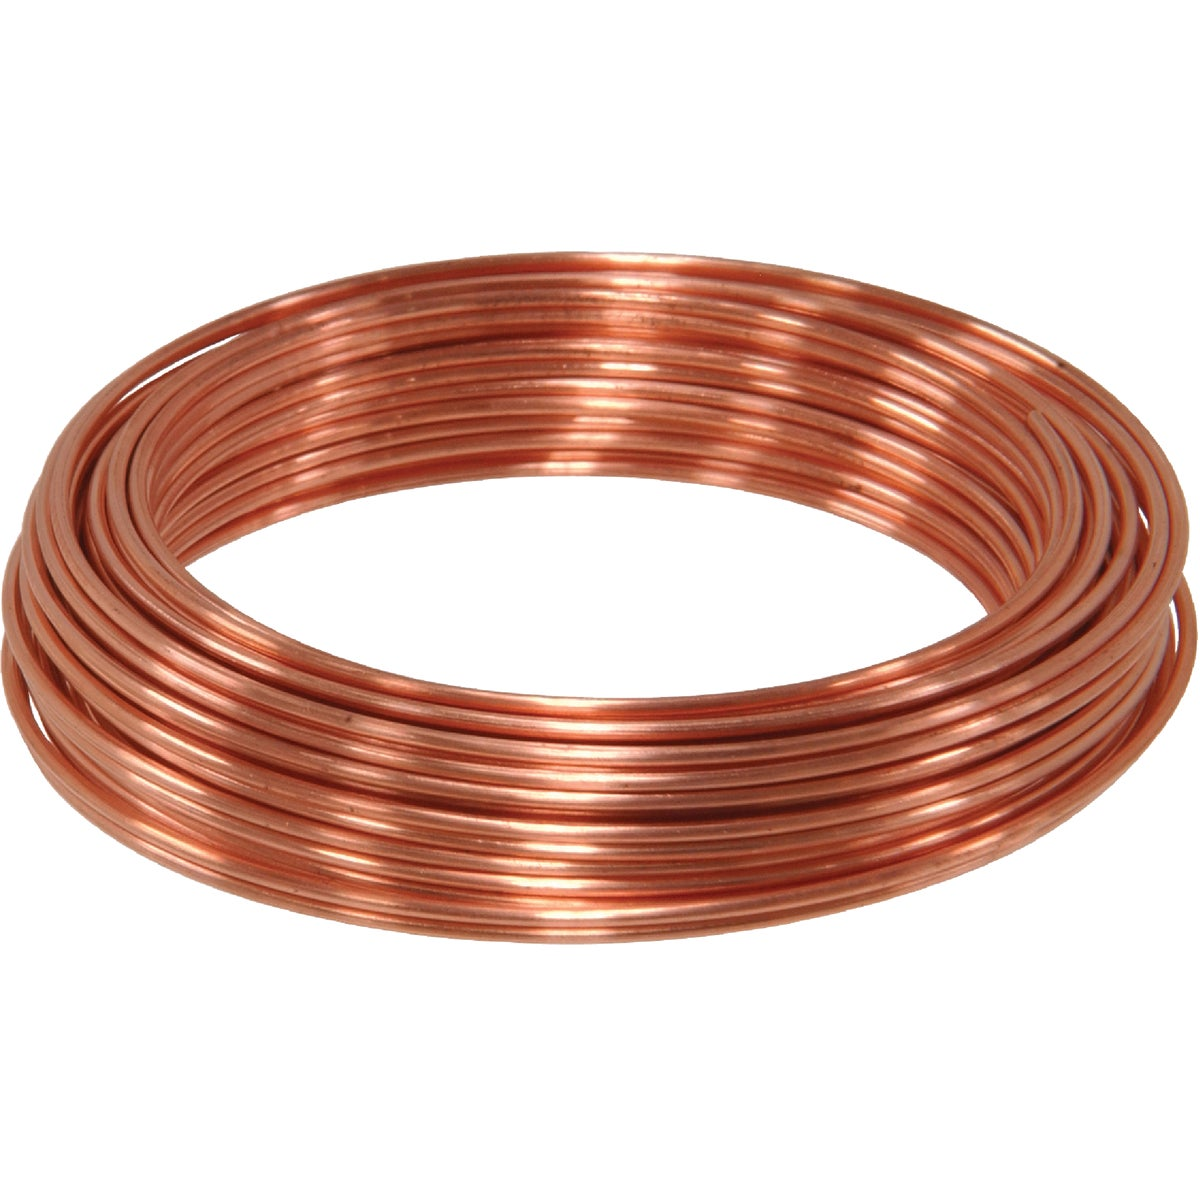 25' 18G COPPER WIRE - 123109 by Hillman Fastener